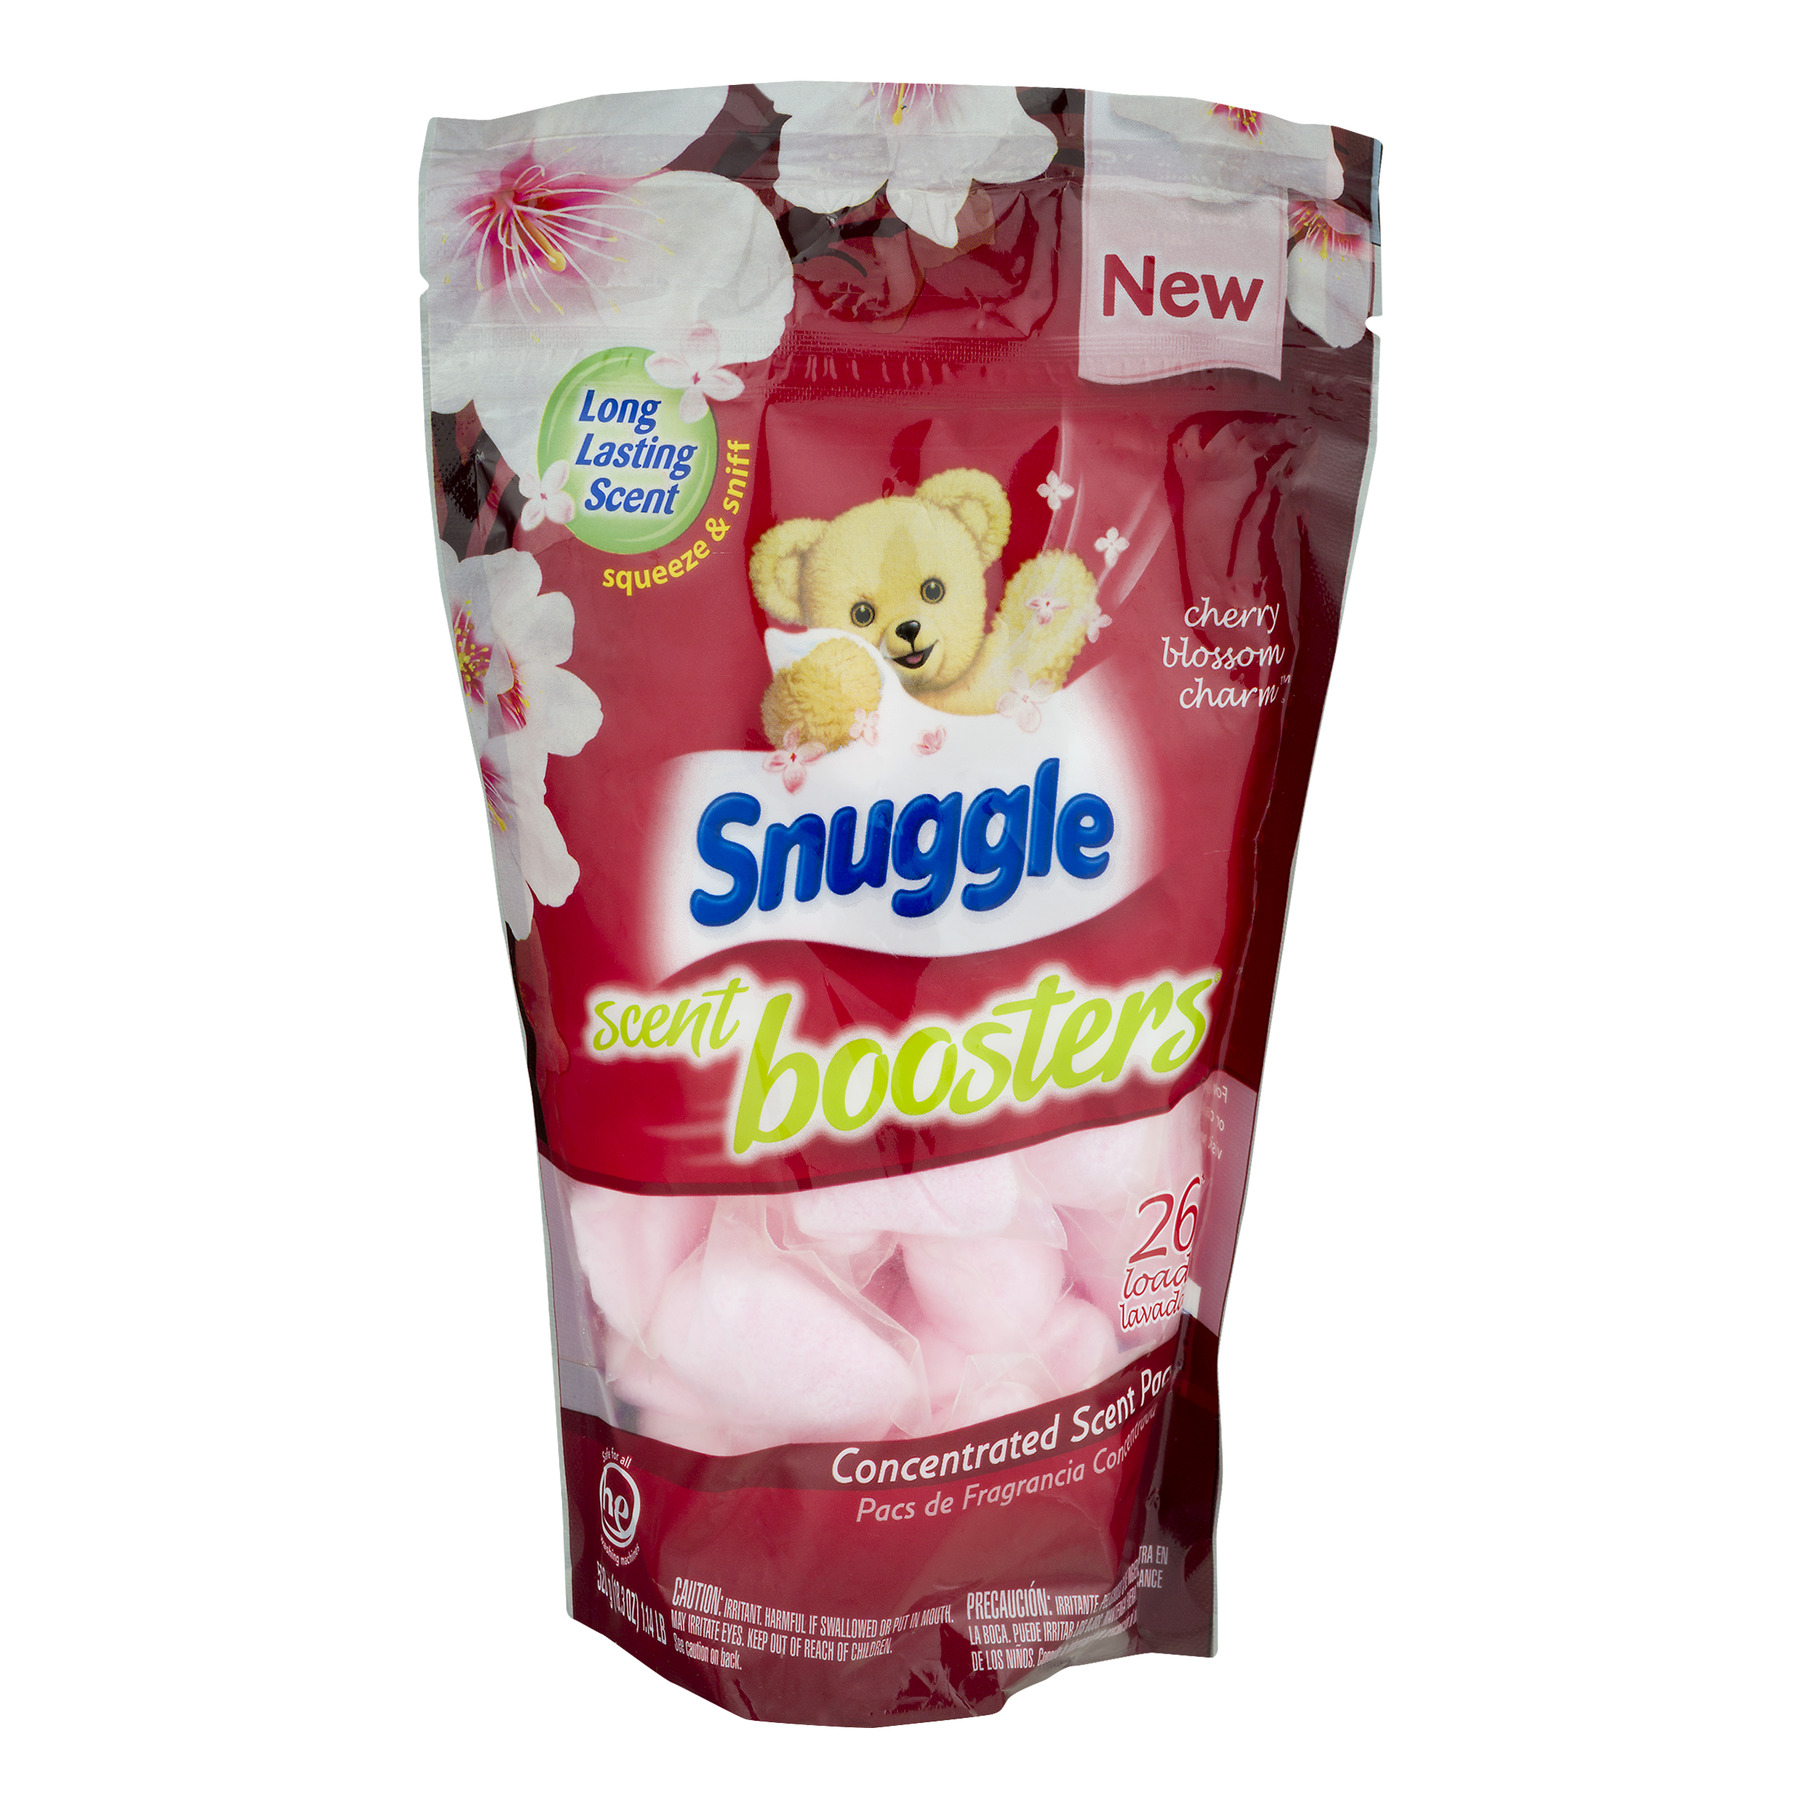 Snuggle Scent Laundry Boosters Cherry Blossom Charm - 26 CT26.0 CT